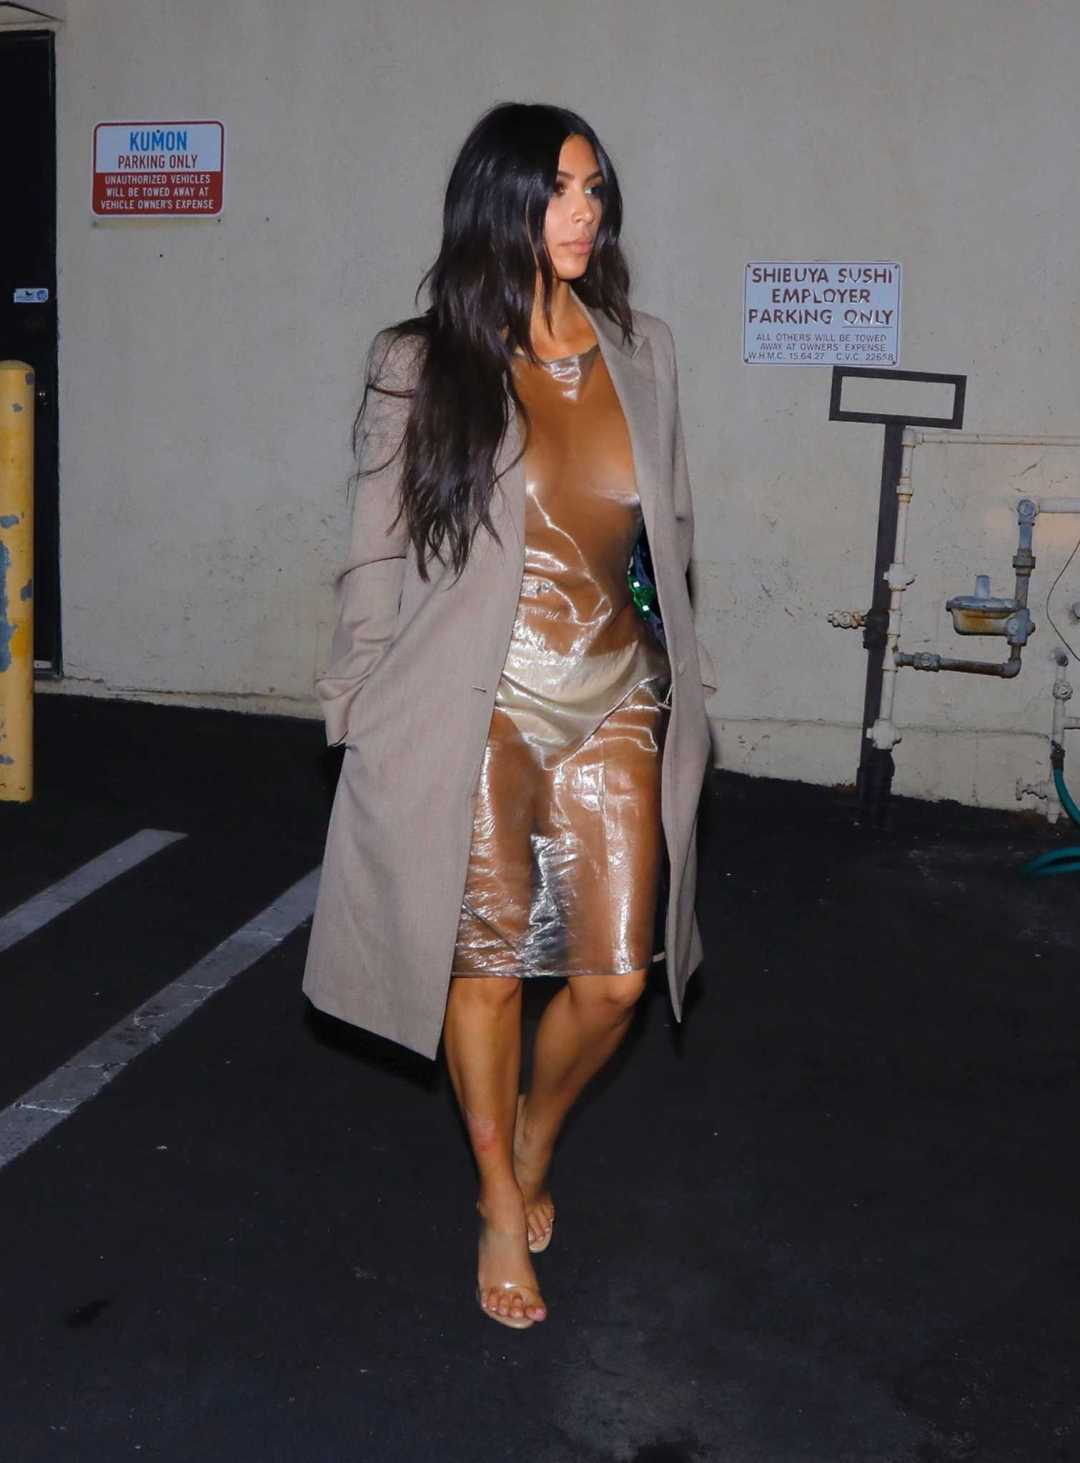 Naked Dress Trend - Kim Kardashian West